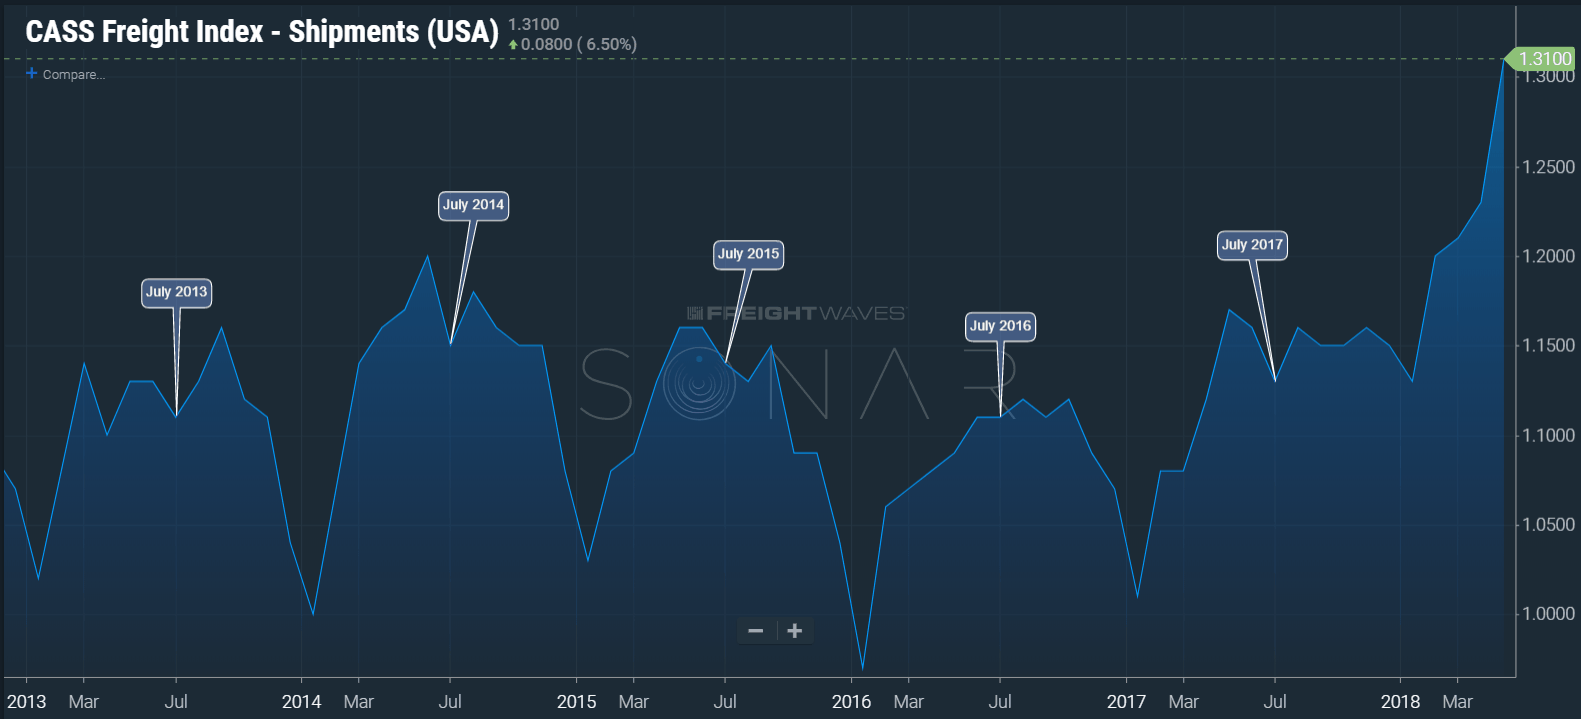 (Image: SONAR chart of the Cass Freight Shipments Index illustrating the July lull in shipment volumes each year.)